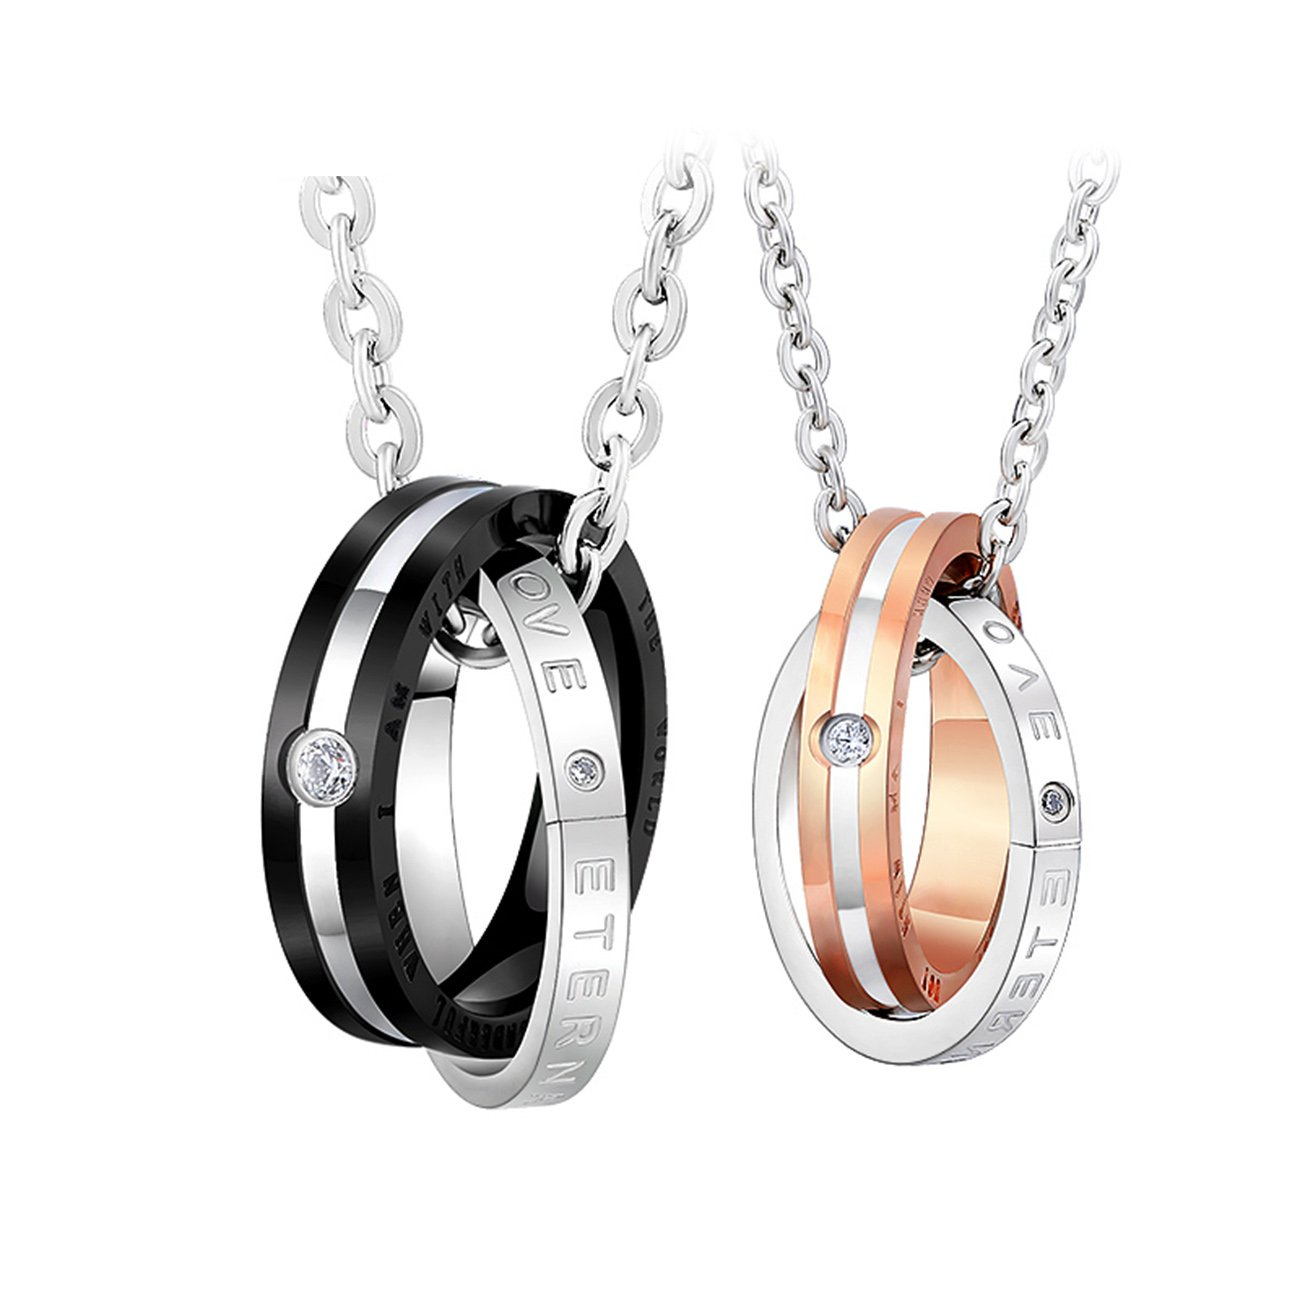 Ruinuo His & Hers Matching Set Couple Pendant Necklace Korean Love Style Gifts For Friends